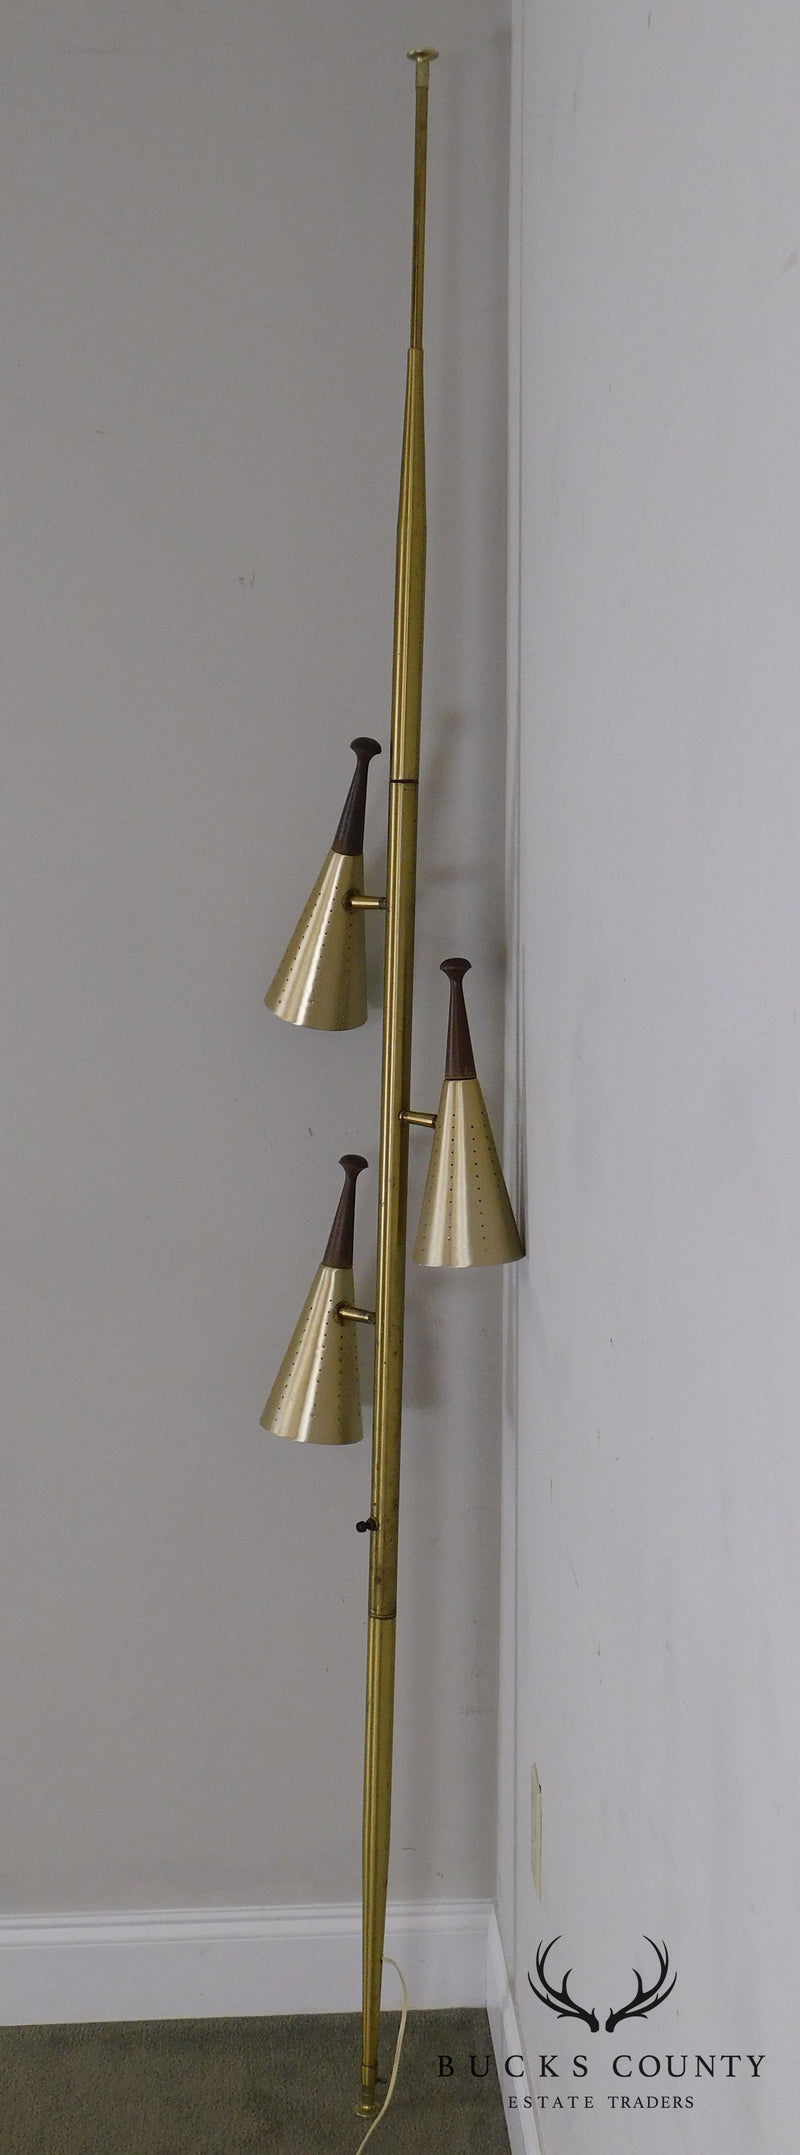 Mid Century Modern 3 Light Pole Lamp (B)